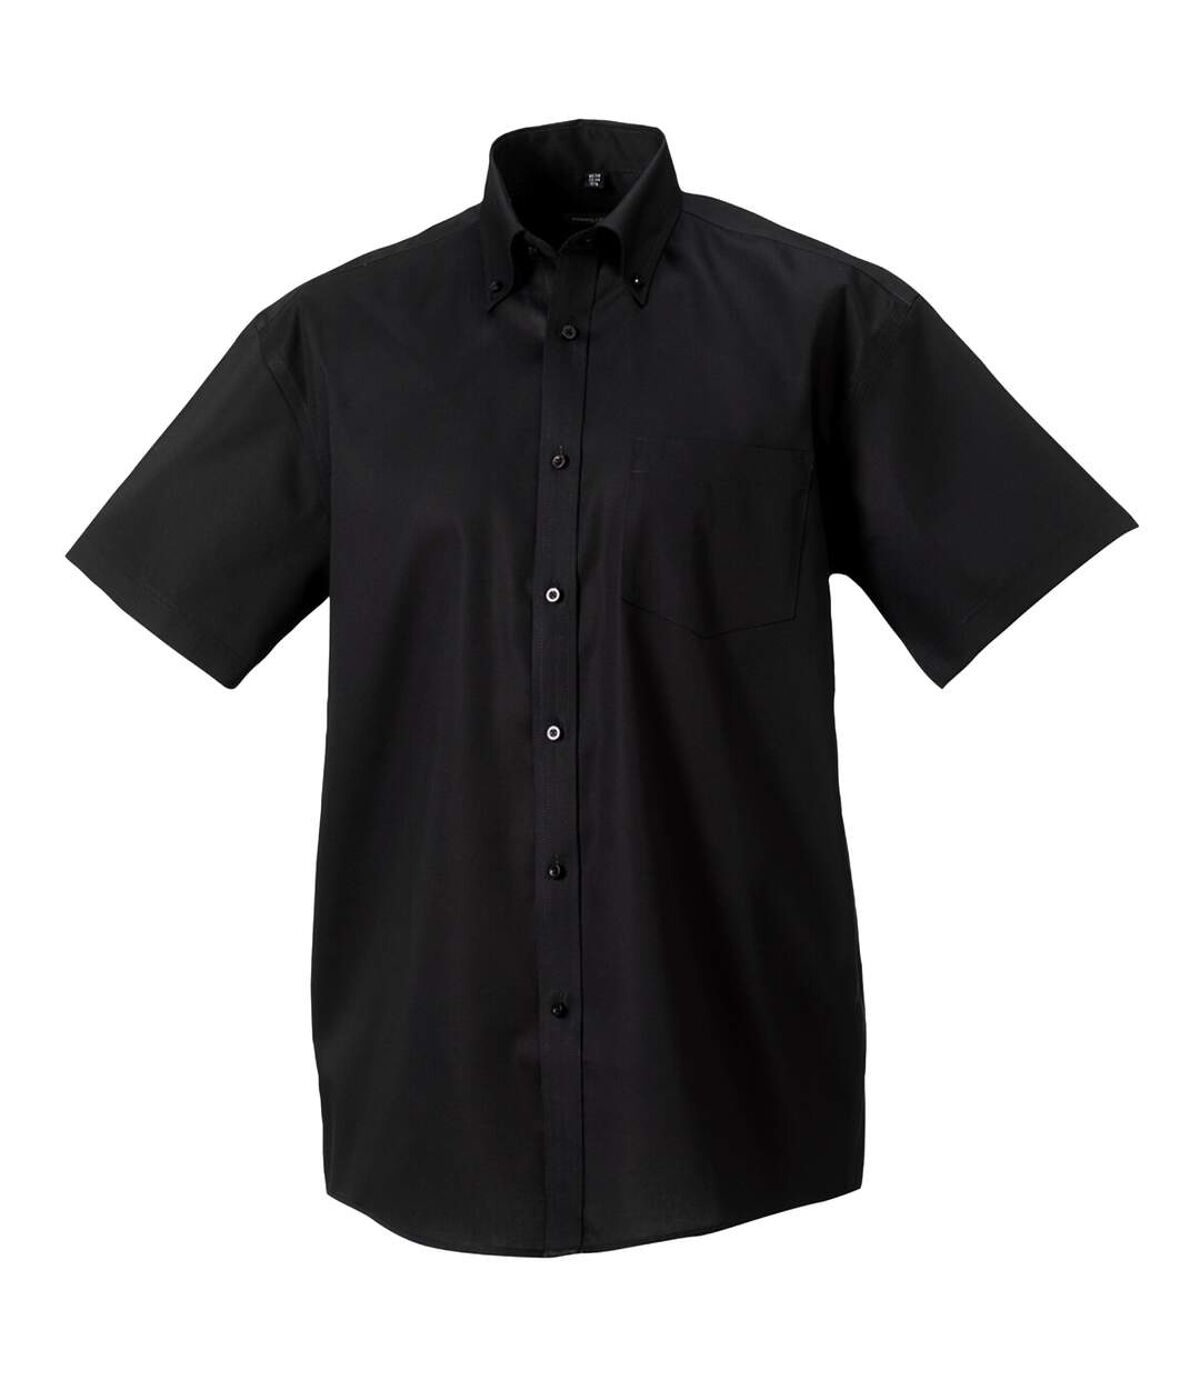 Russell Collection Mens Short Sleeve Ultimate Non-Iron Shirt (Black) - UTBC1037